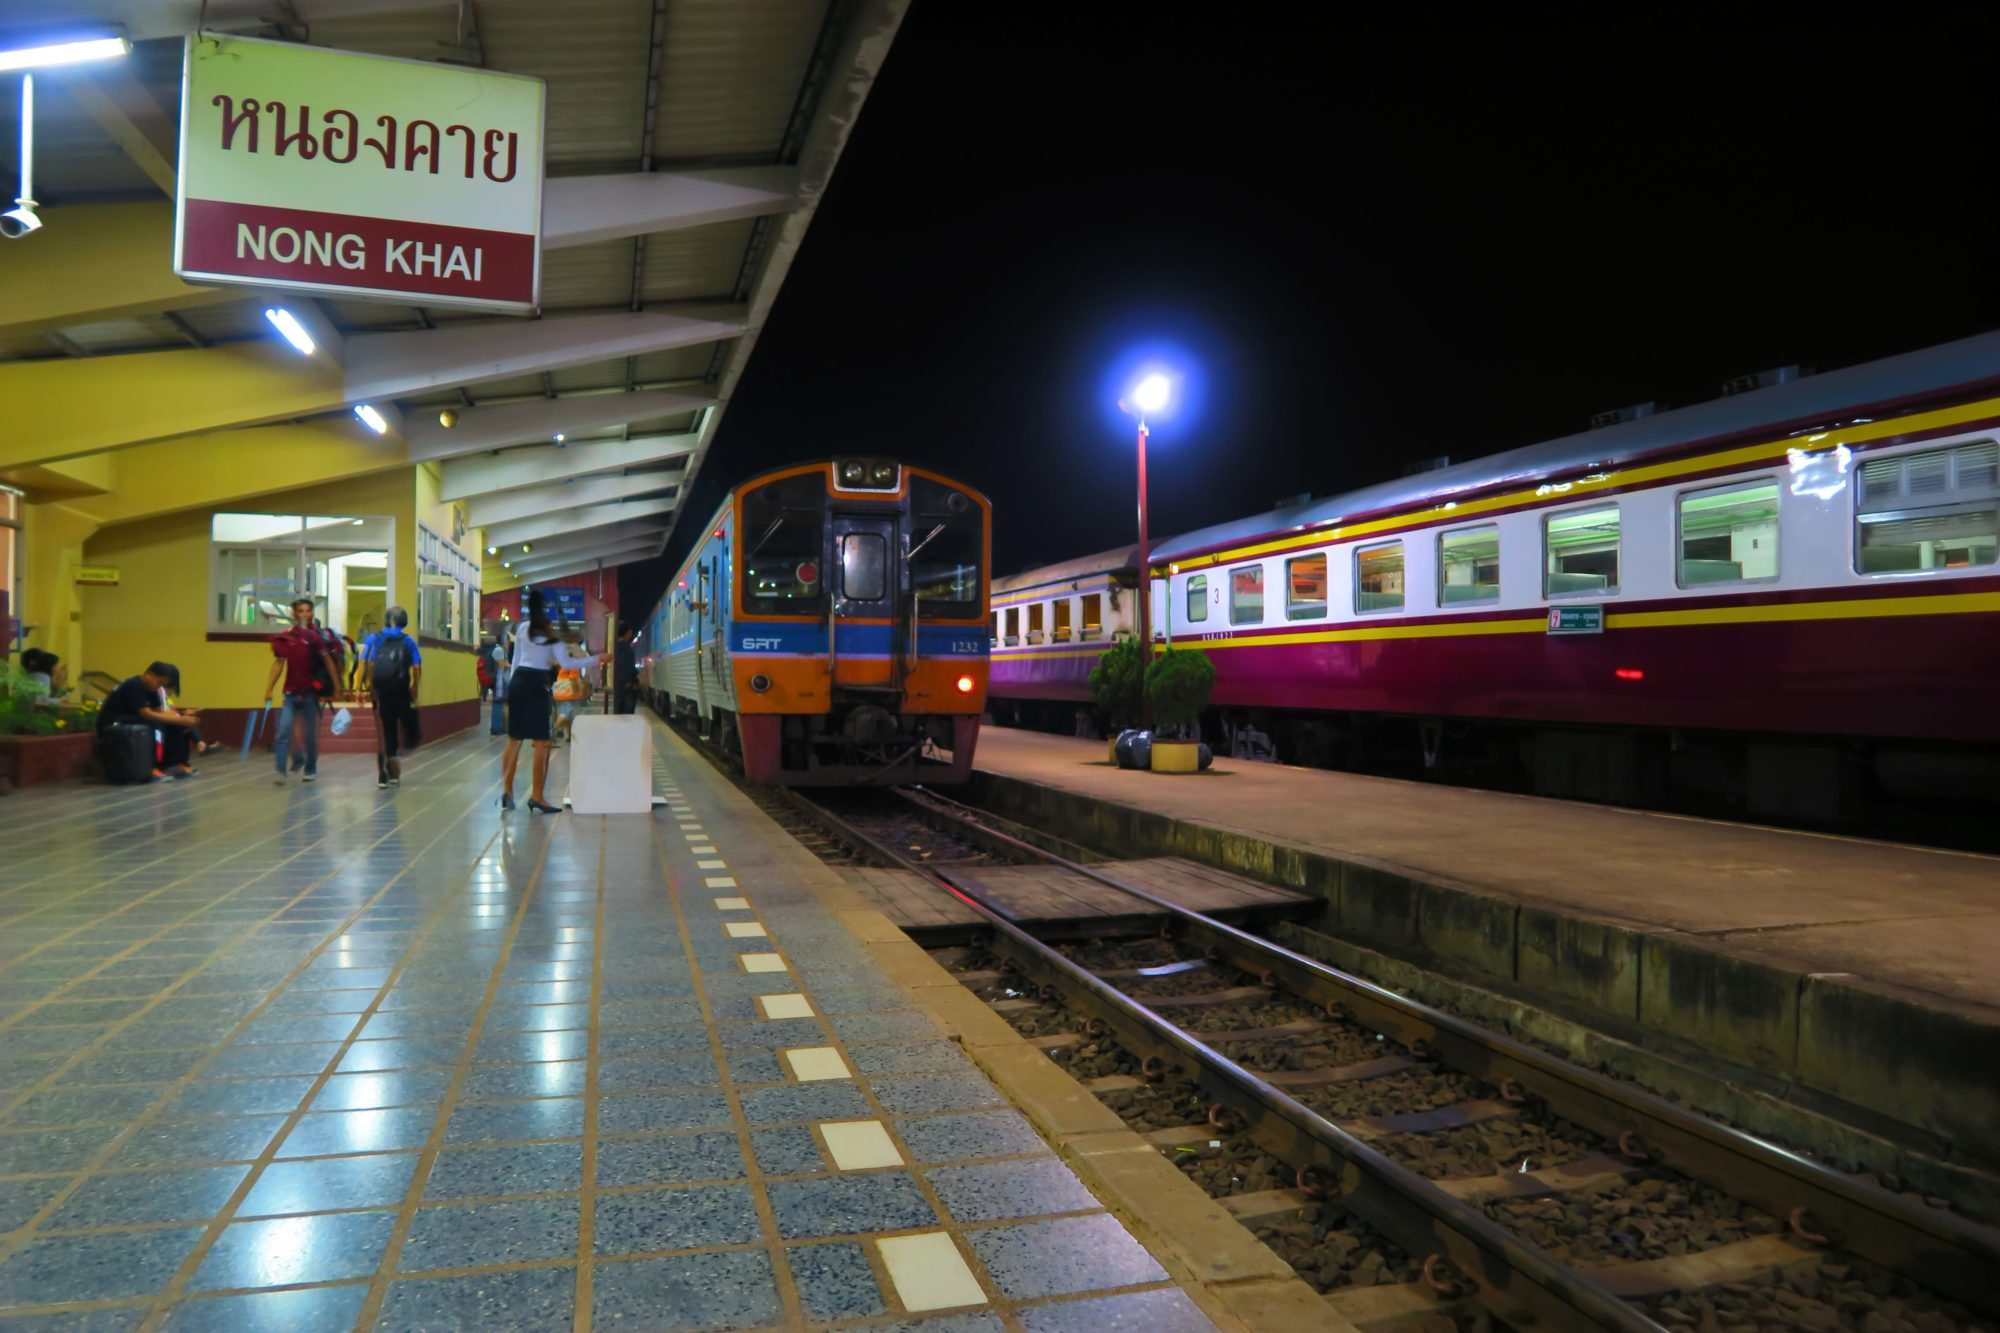 thailand_nong_khai_train